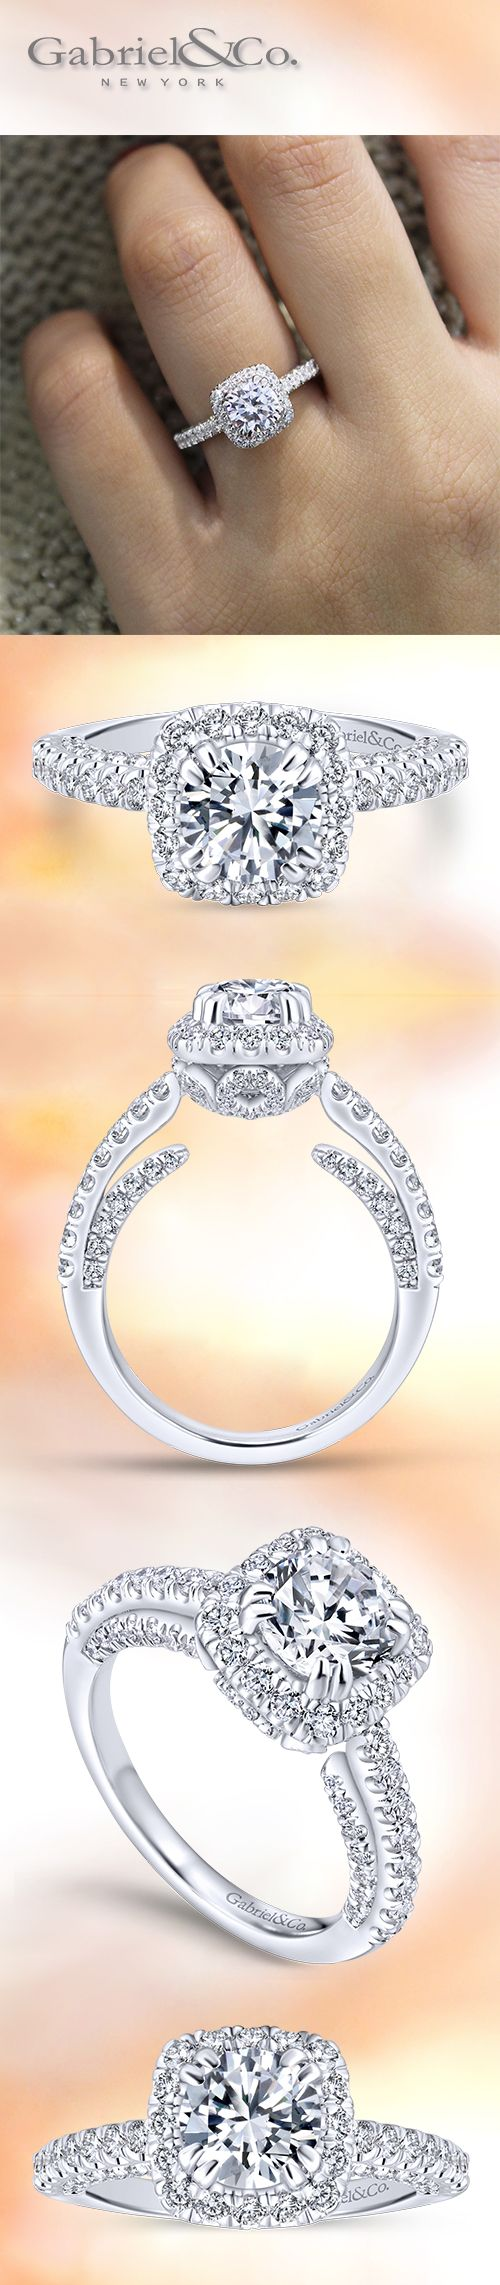 Gabriel & Co. - Voted #1 Preferred Bridal Brand. The Classic 14k White Gold Round-Cut Diamond Halo Engagement Ring. Style: ER12953R4W44JJ